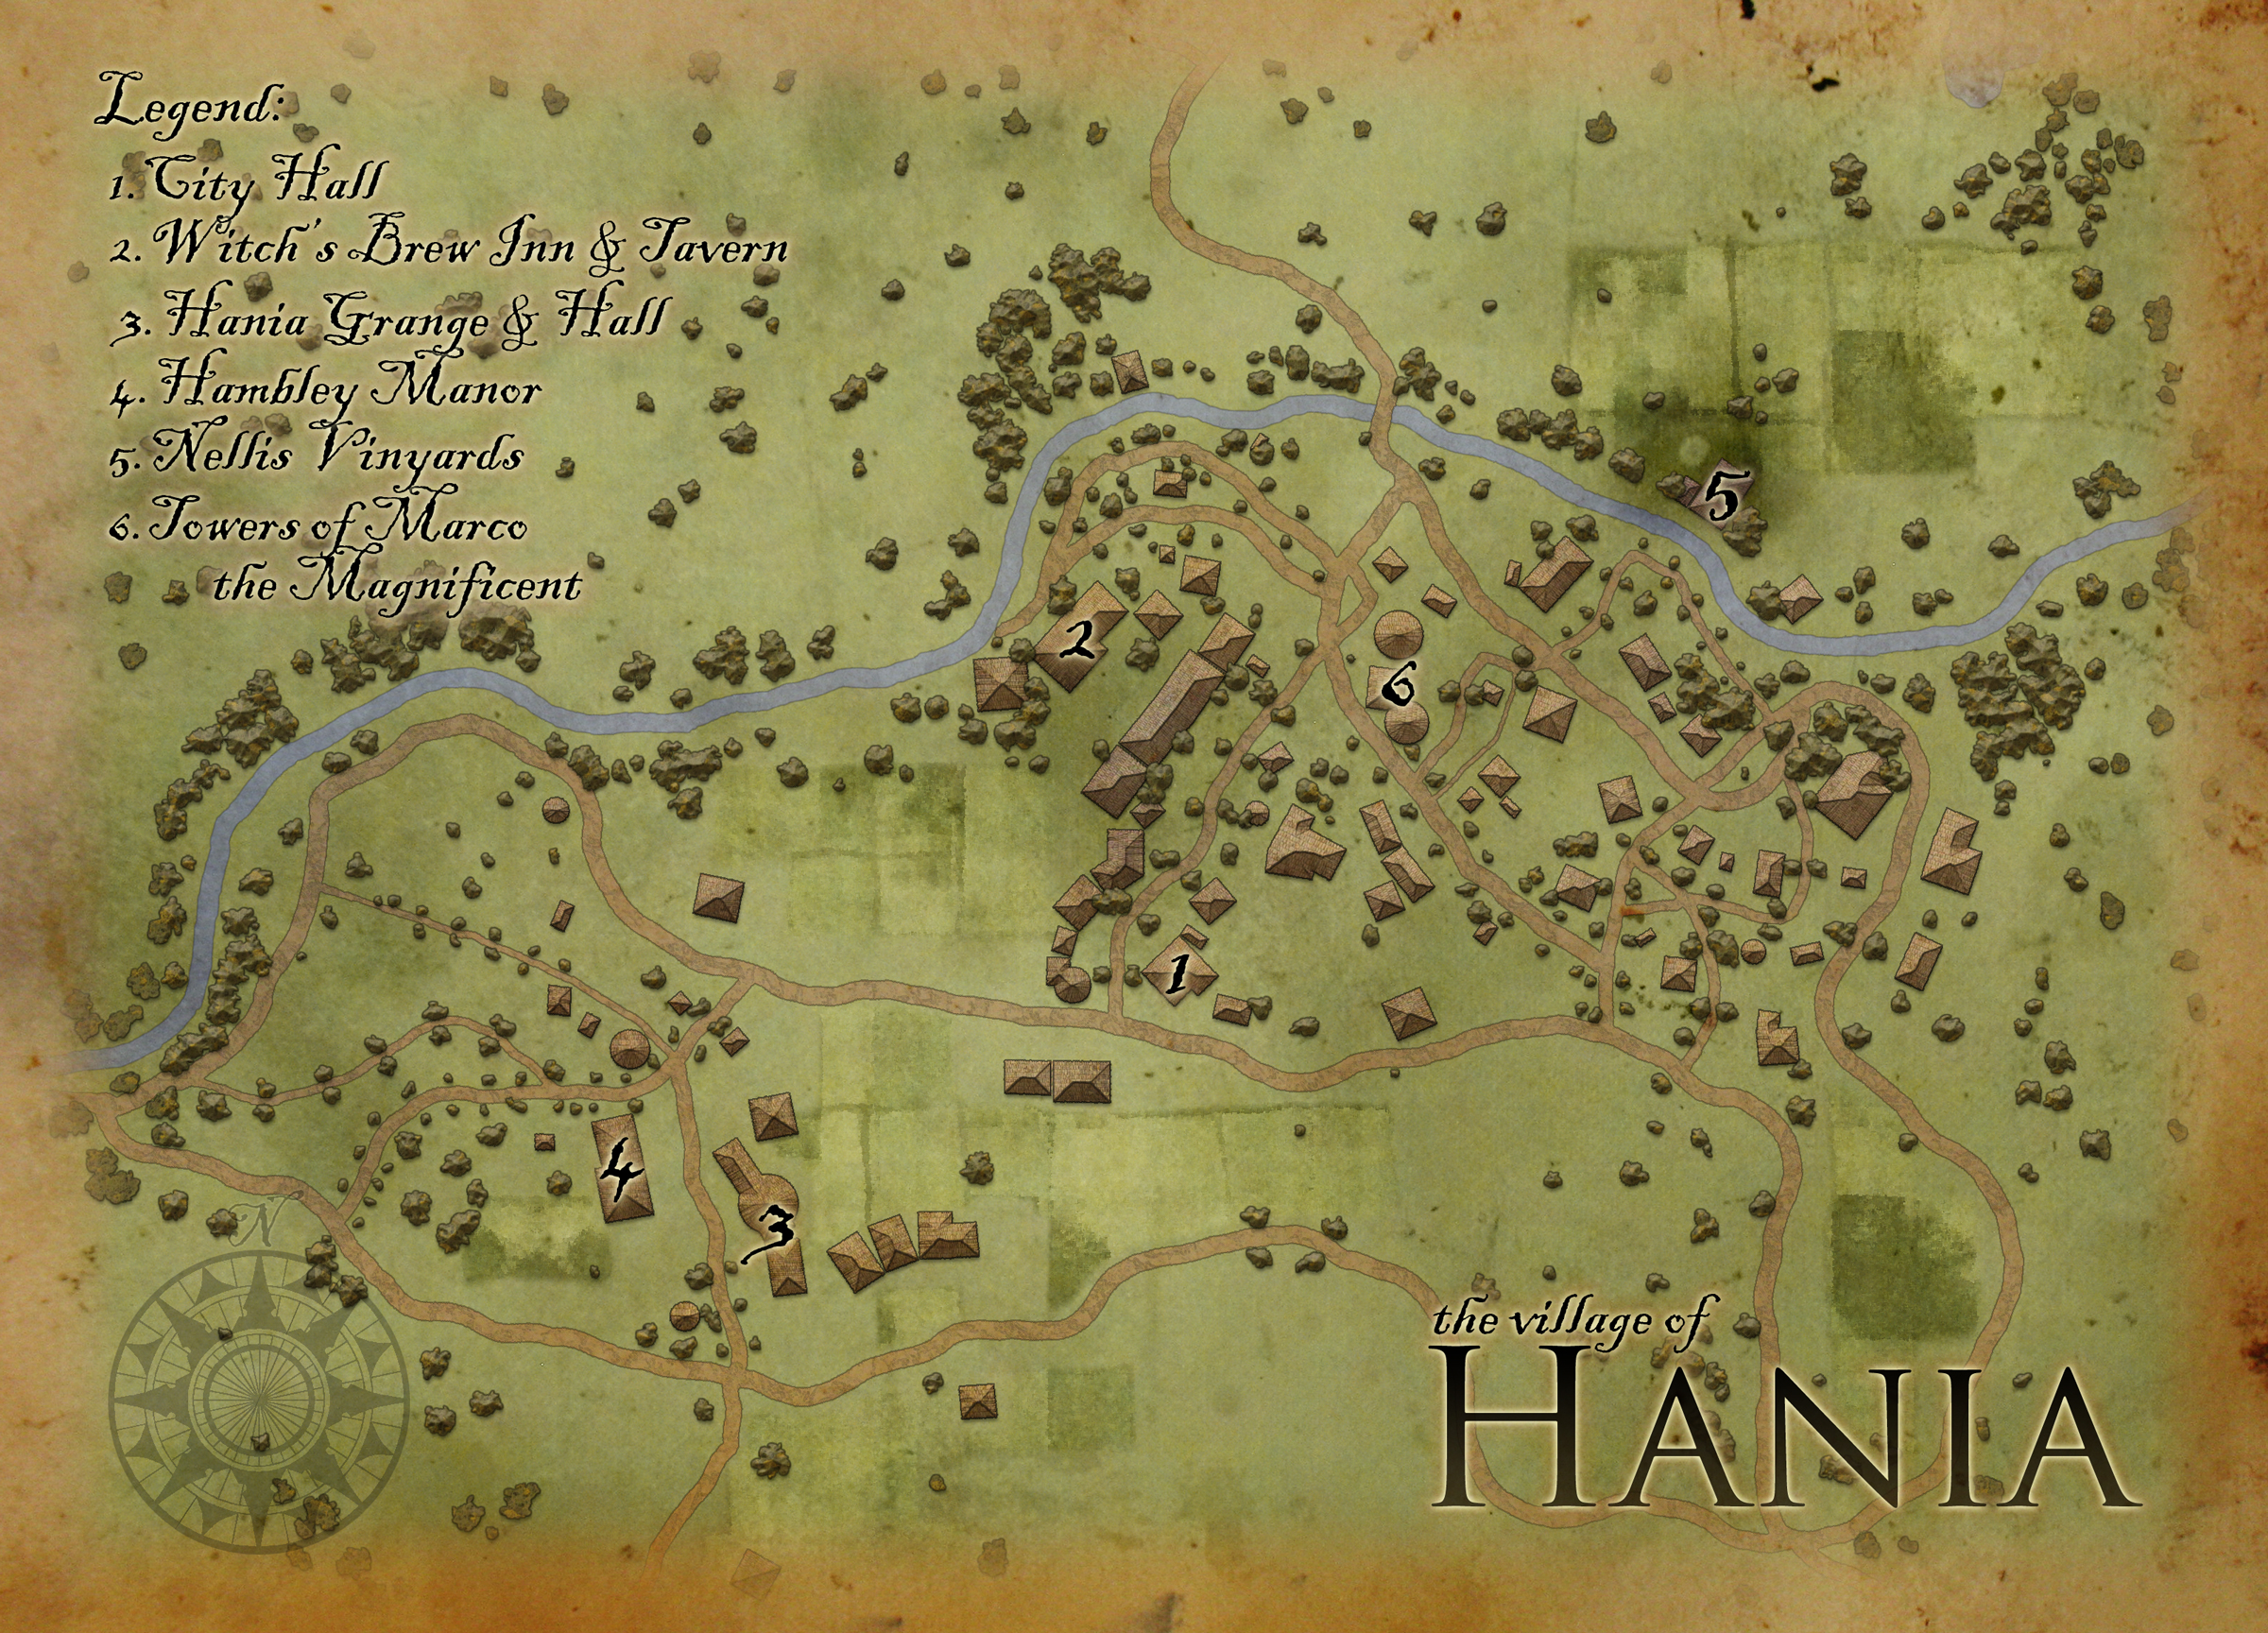 The village of Hania - This is a small village along the Crescent River in the Witchlight Strand, done for the CWBP at the request of Industry Gothica. It is released under the CC BY-NC-SA license 3.0.